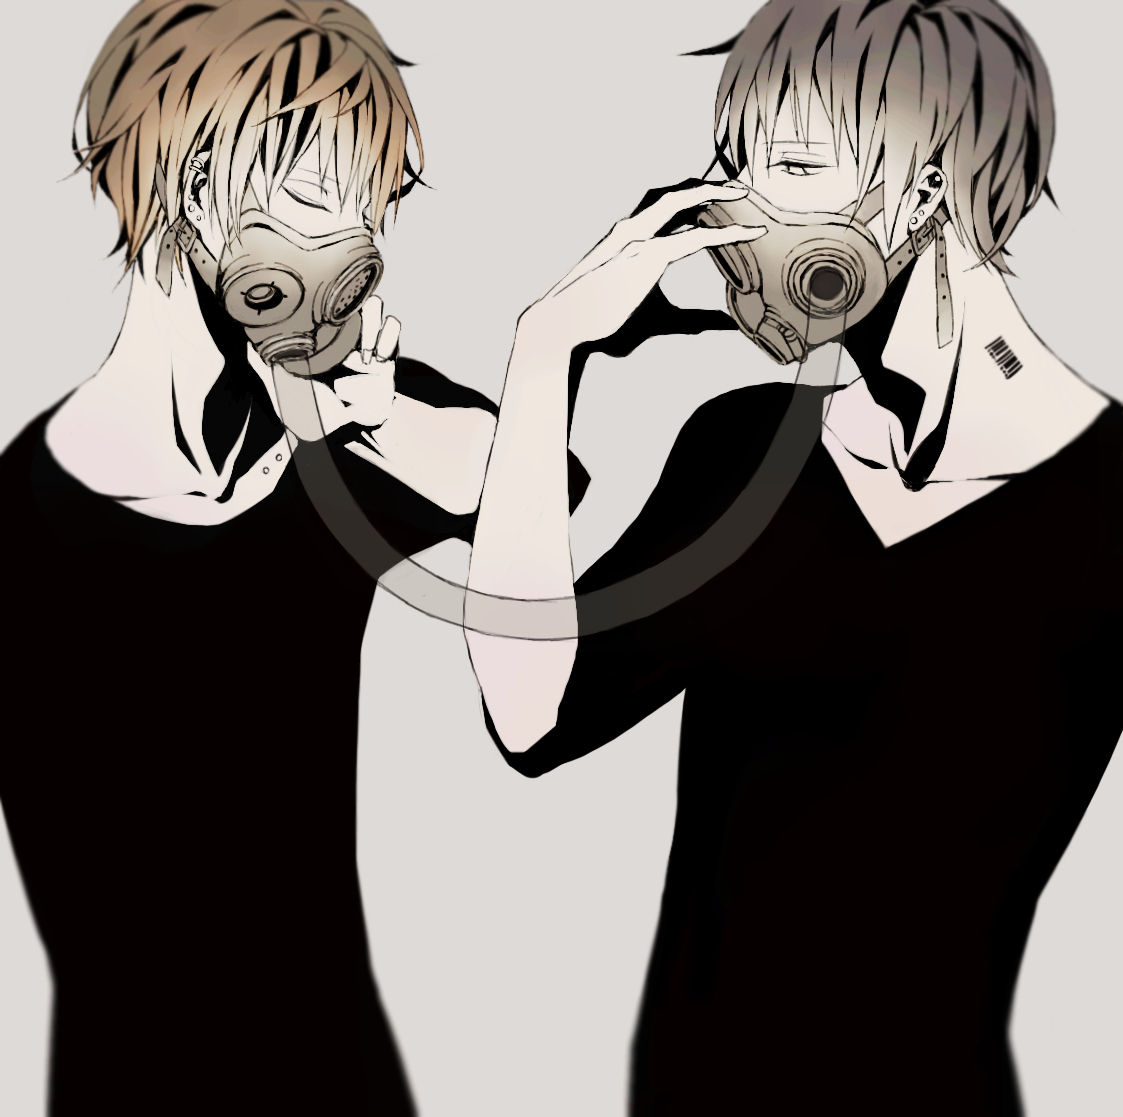 Anime-Guy-with-Gas-Mask-wallpaper-wp4003023-1